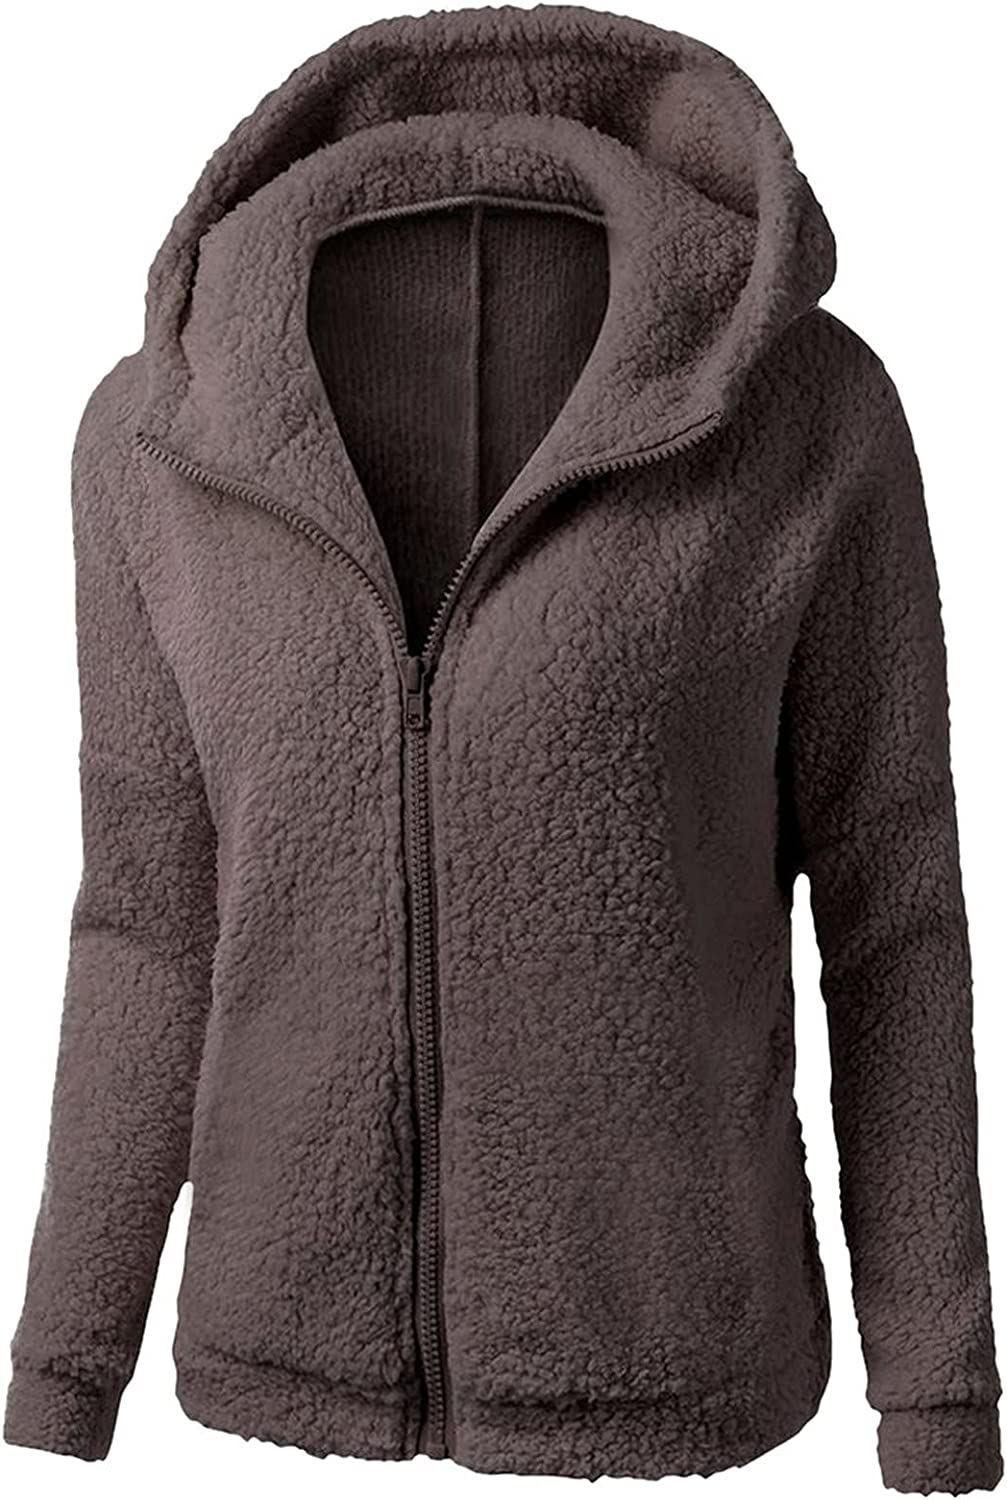 San Antonio Mall Ranking TOP5 Hooded Coat for Women Zip up Faux Warm Fas Plus Size Winter Lamb